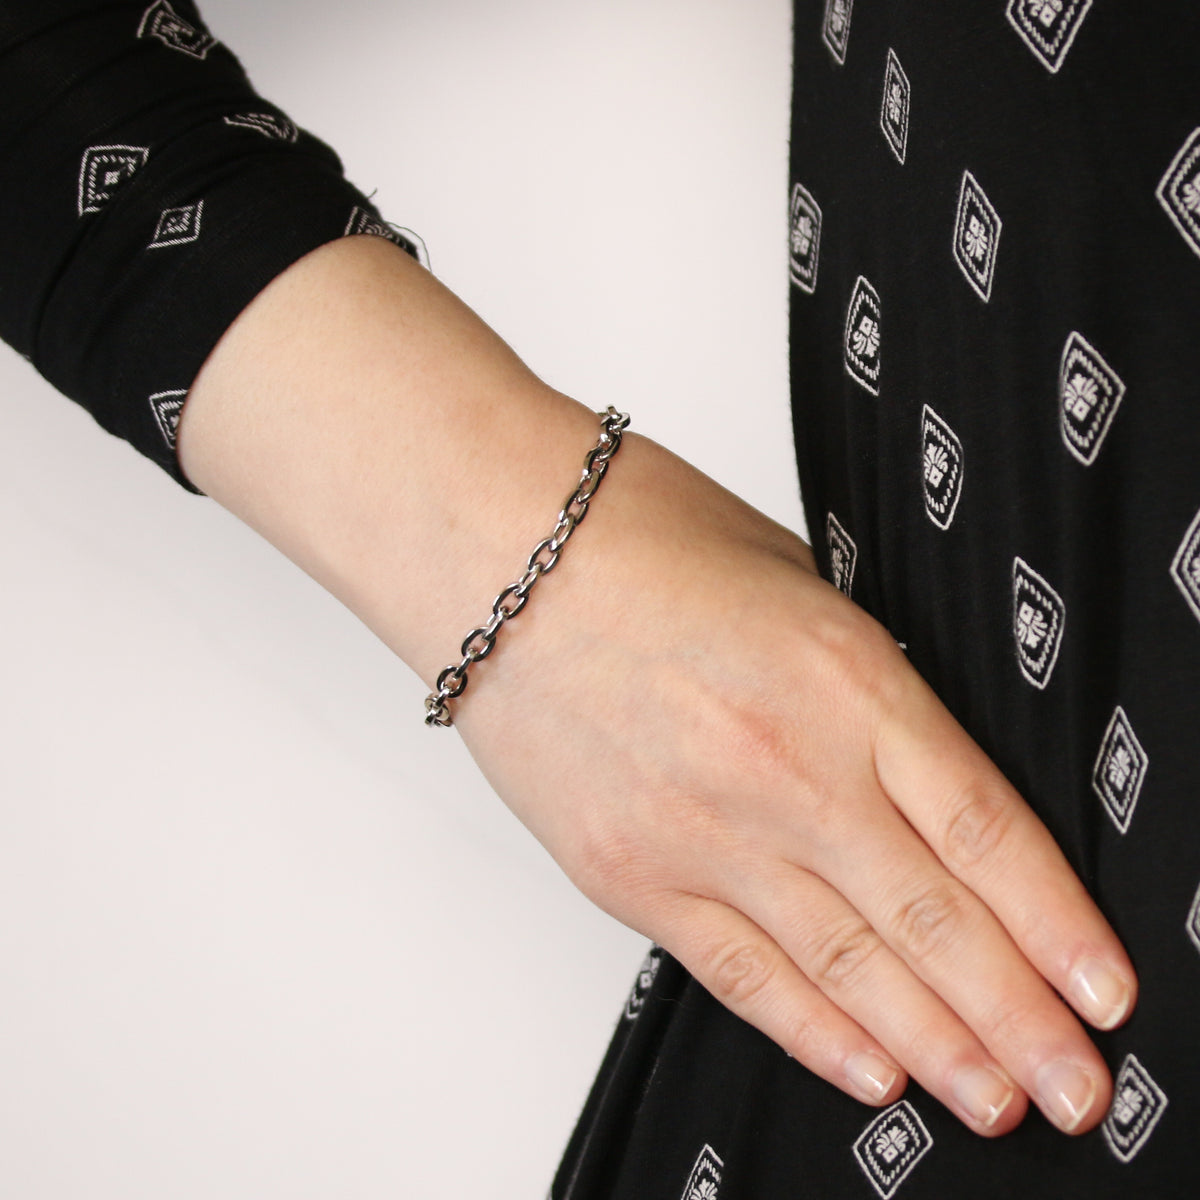 Cable Chain Bracelet White Gold